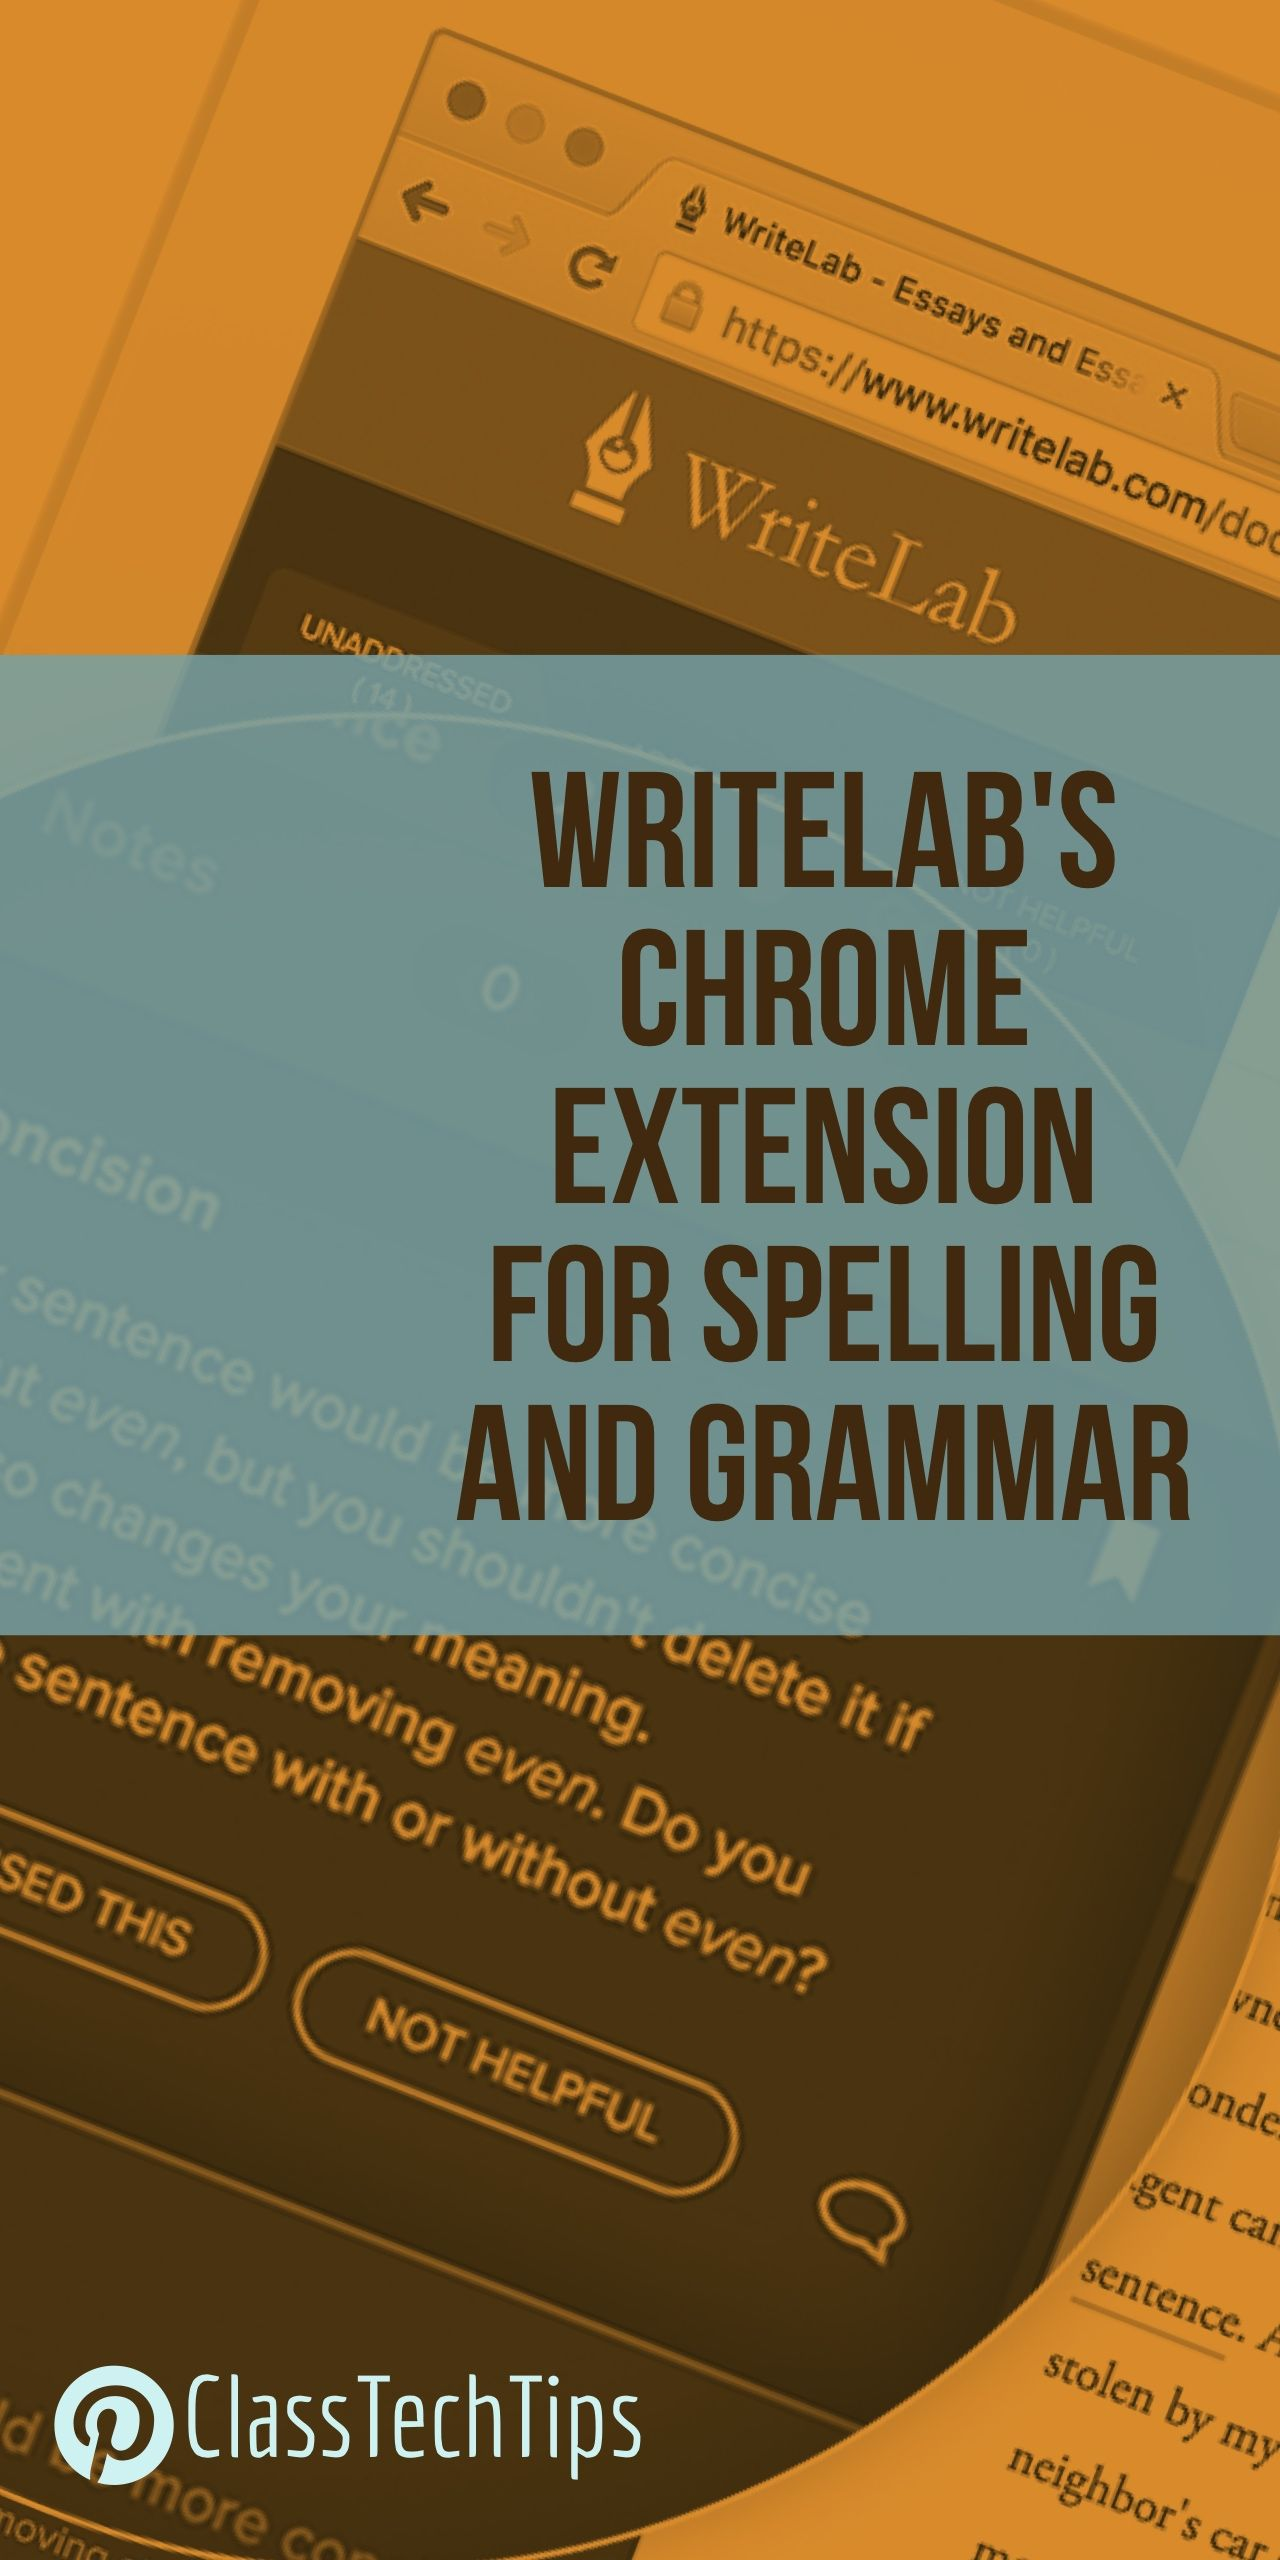 WriteLab's Chrome Extension for more than Spelling and